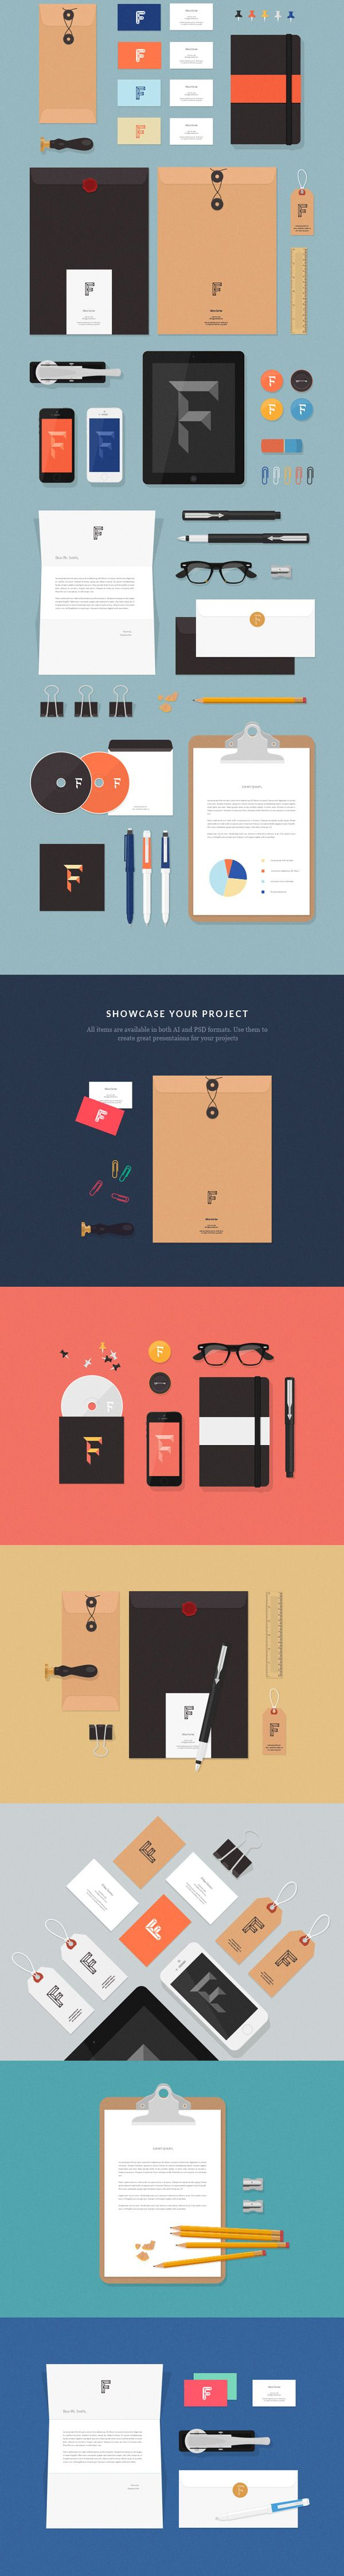 Free Download : Flat MockUps – Stationery Items